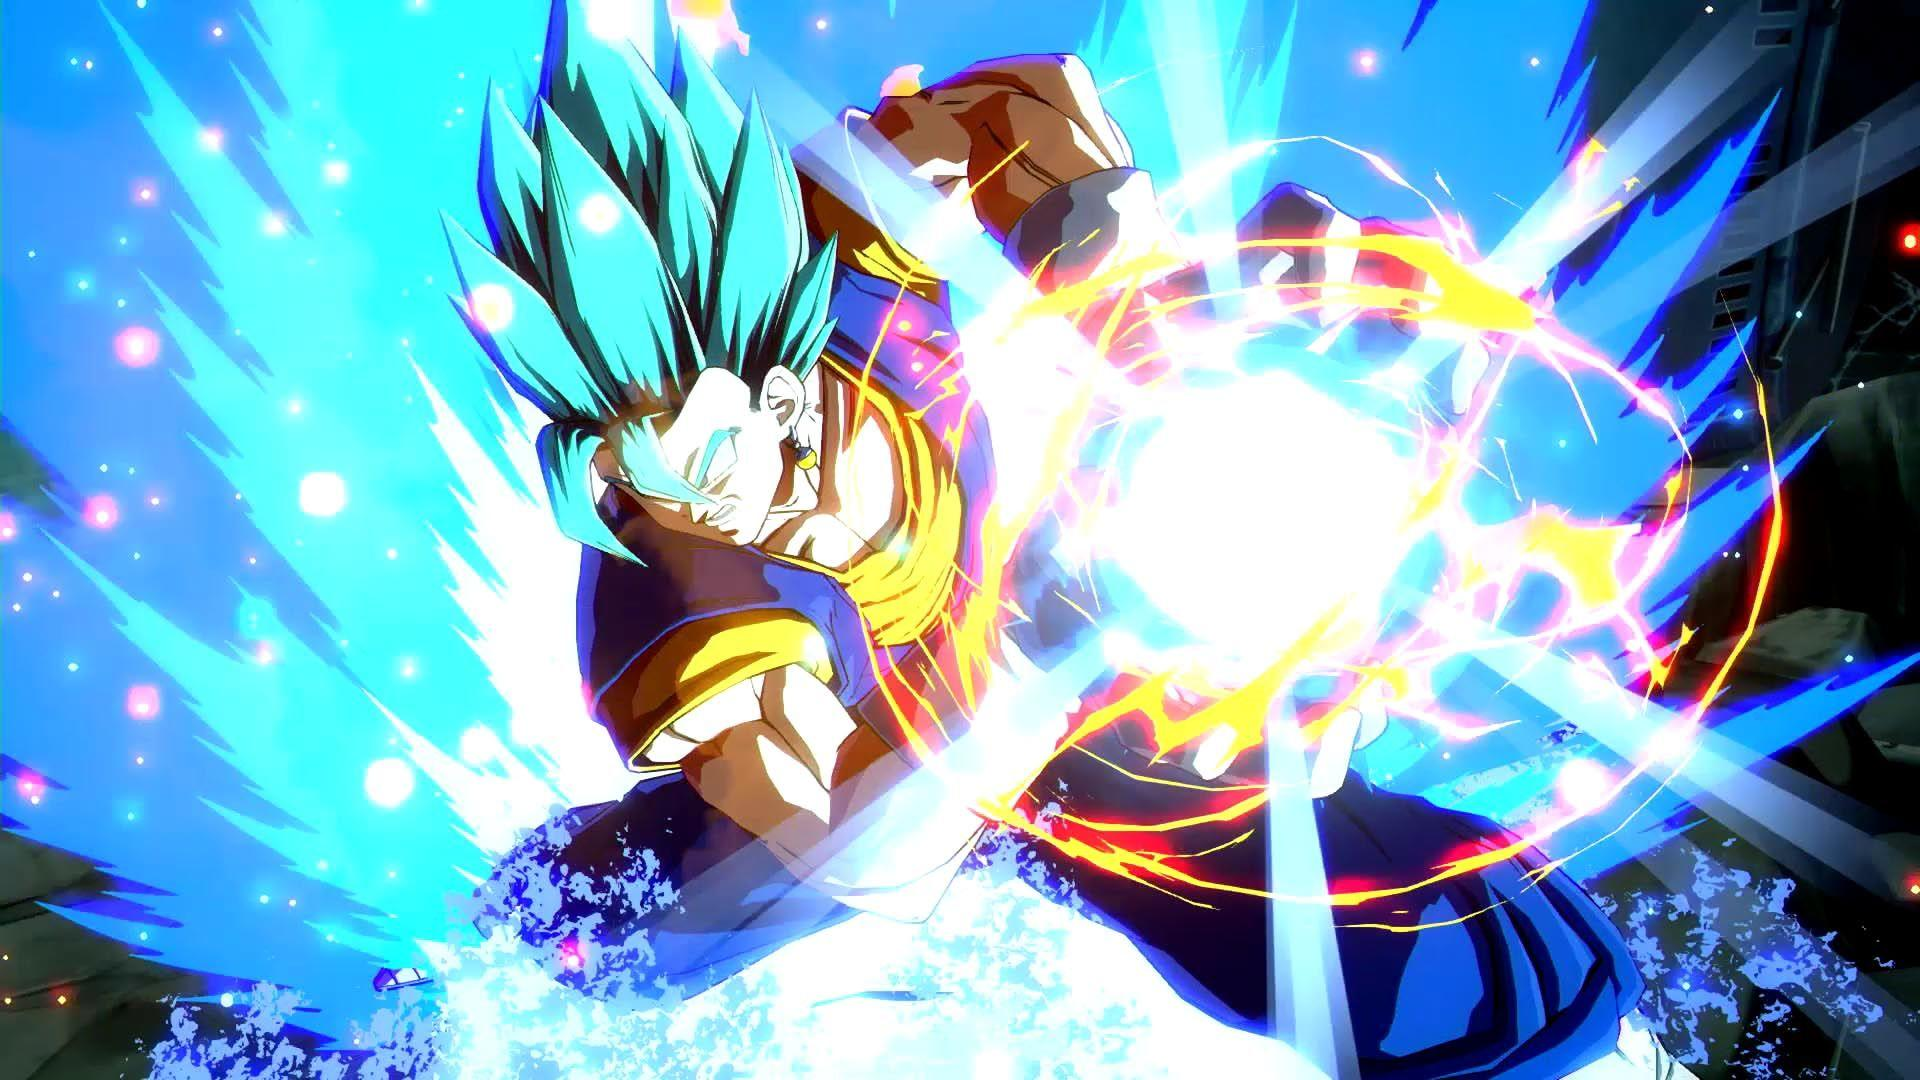 Dragon Ball FighterZ HD Wallpapers - Wallpaper Cave